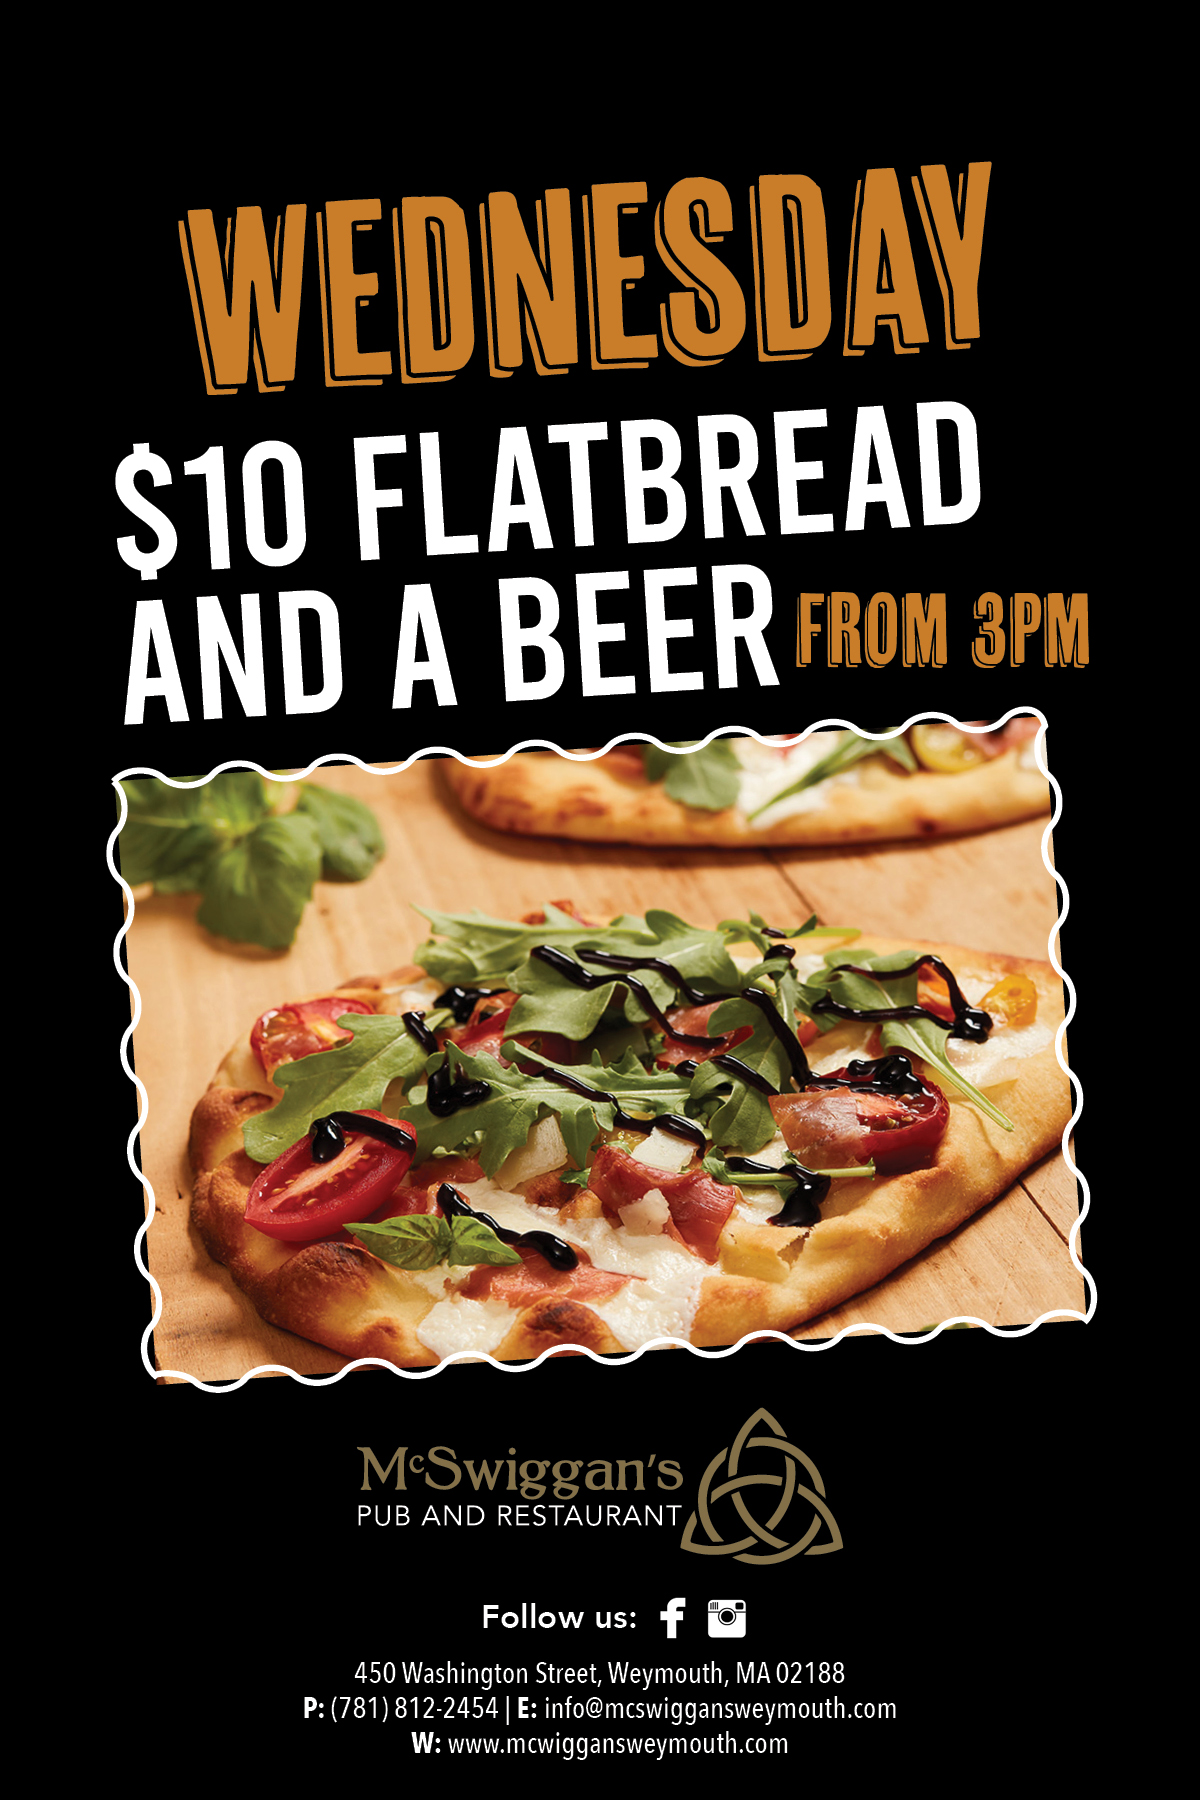 Wednesday $10 Flatbread and a beer from 3pm